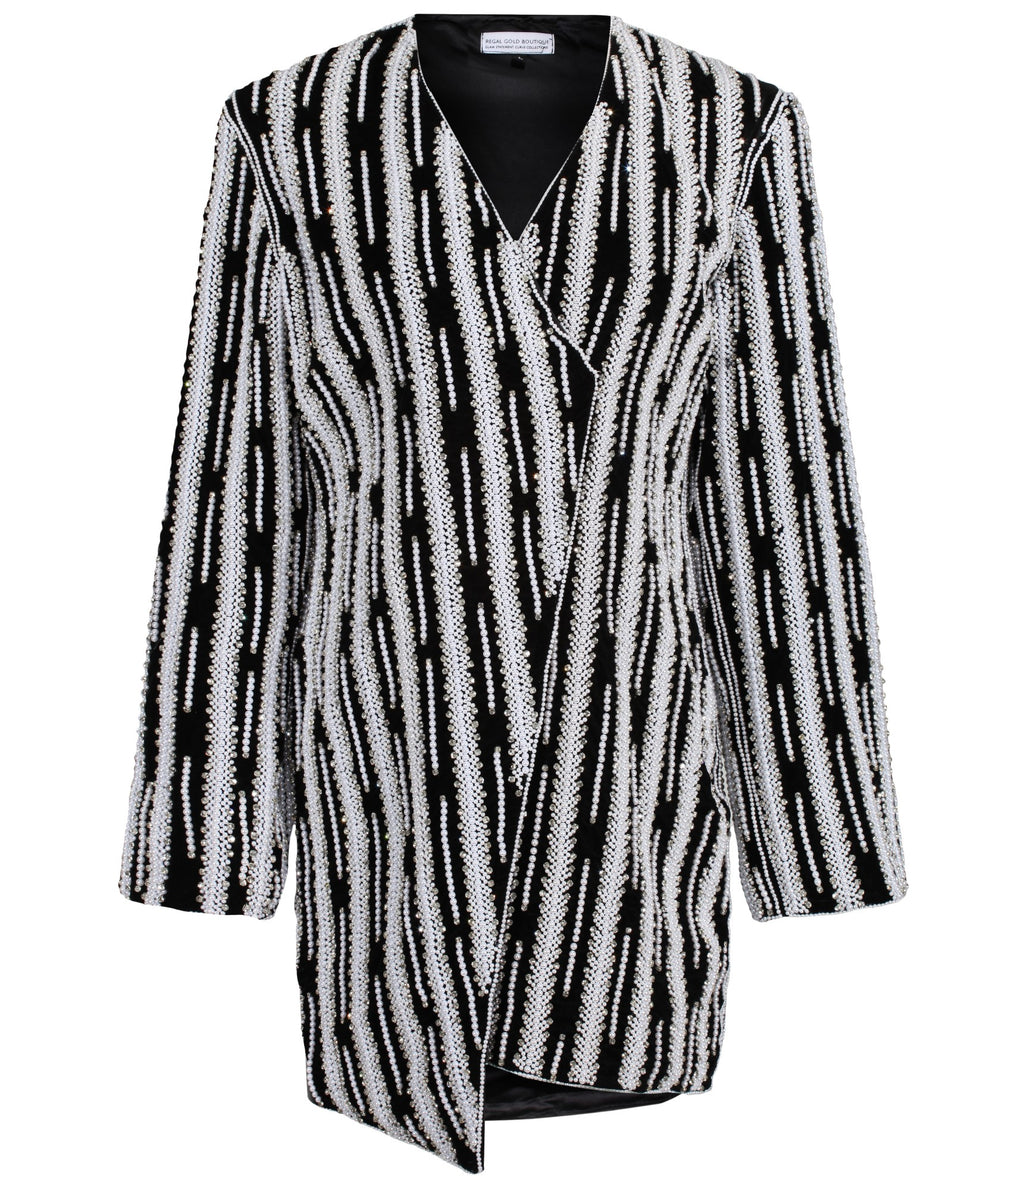 Glacier B/W Blazer Dress